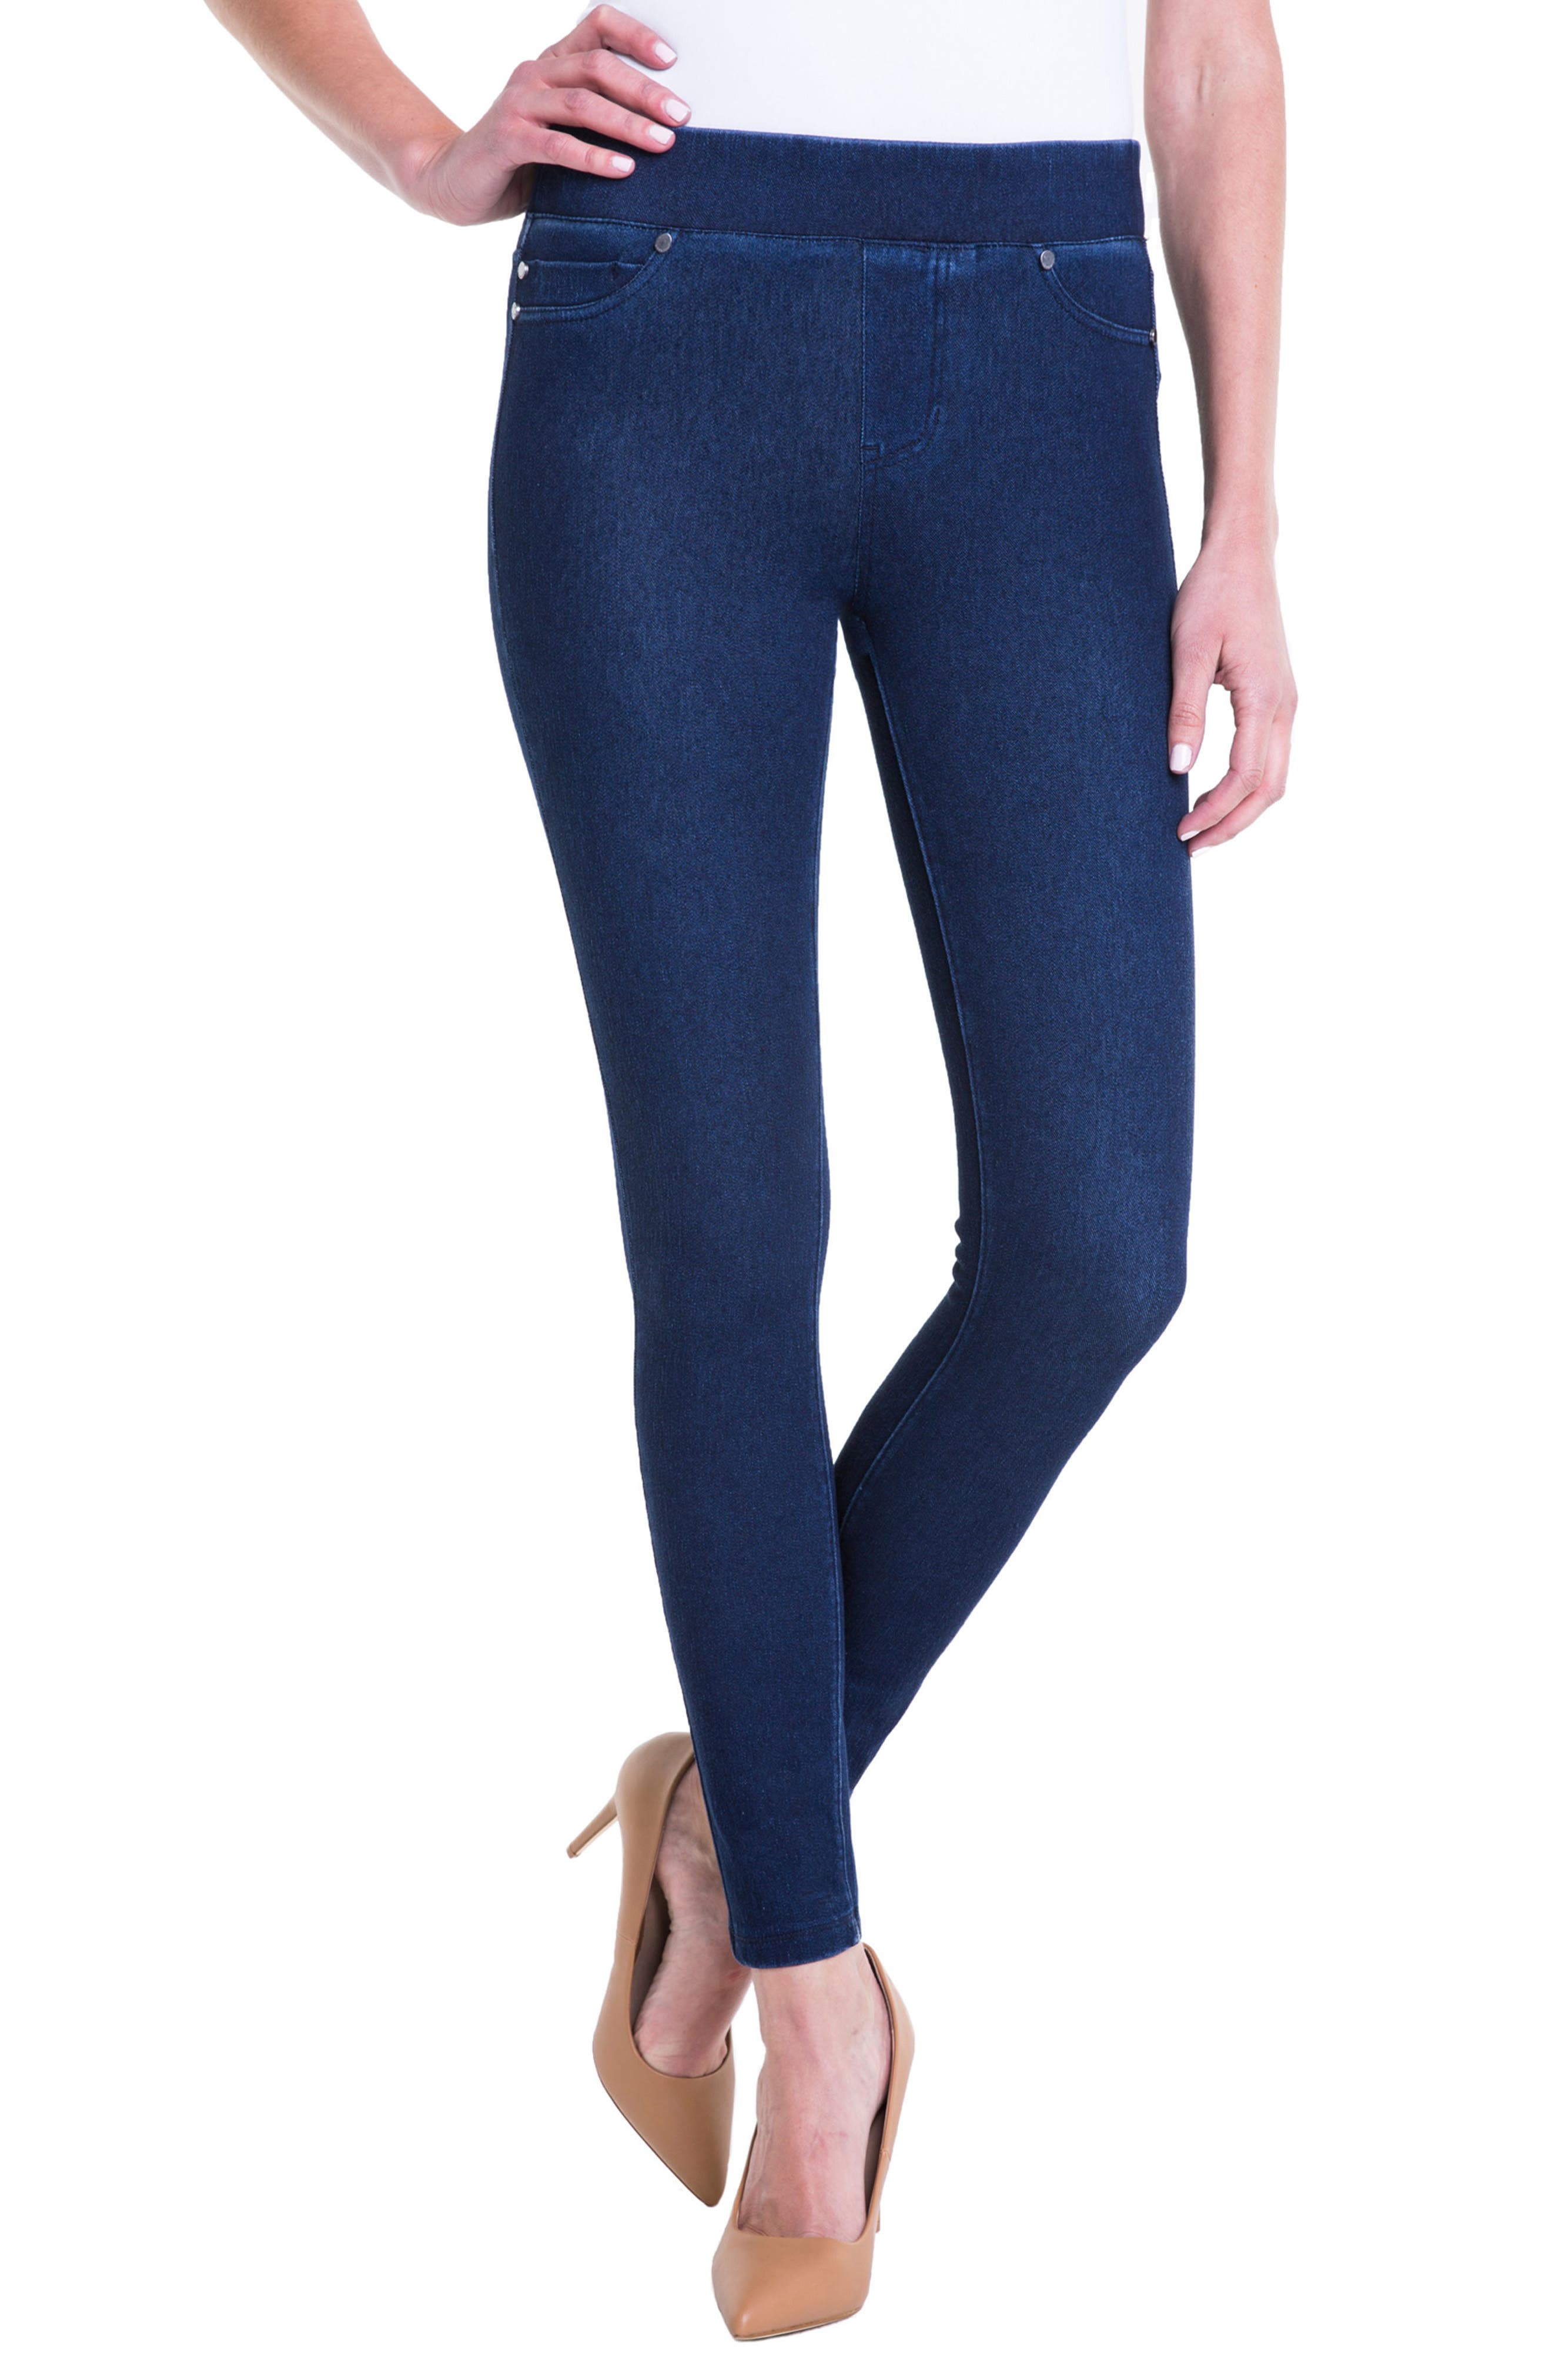 Sienna Pull-On Ankle Legging Jeans,                             Main thumbnail 1, color,                             403